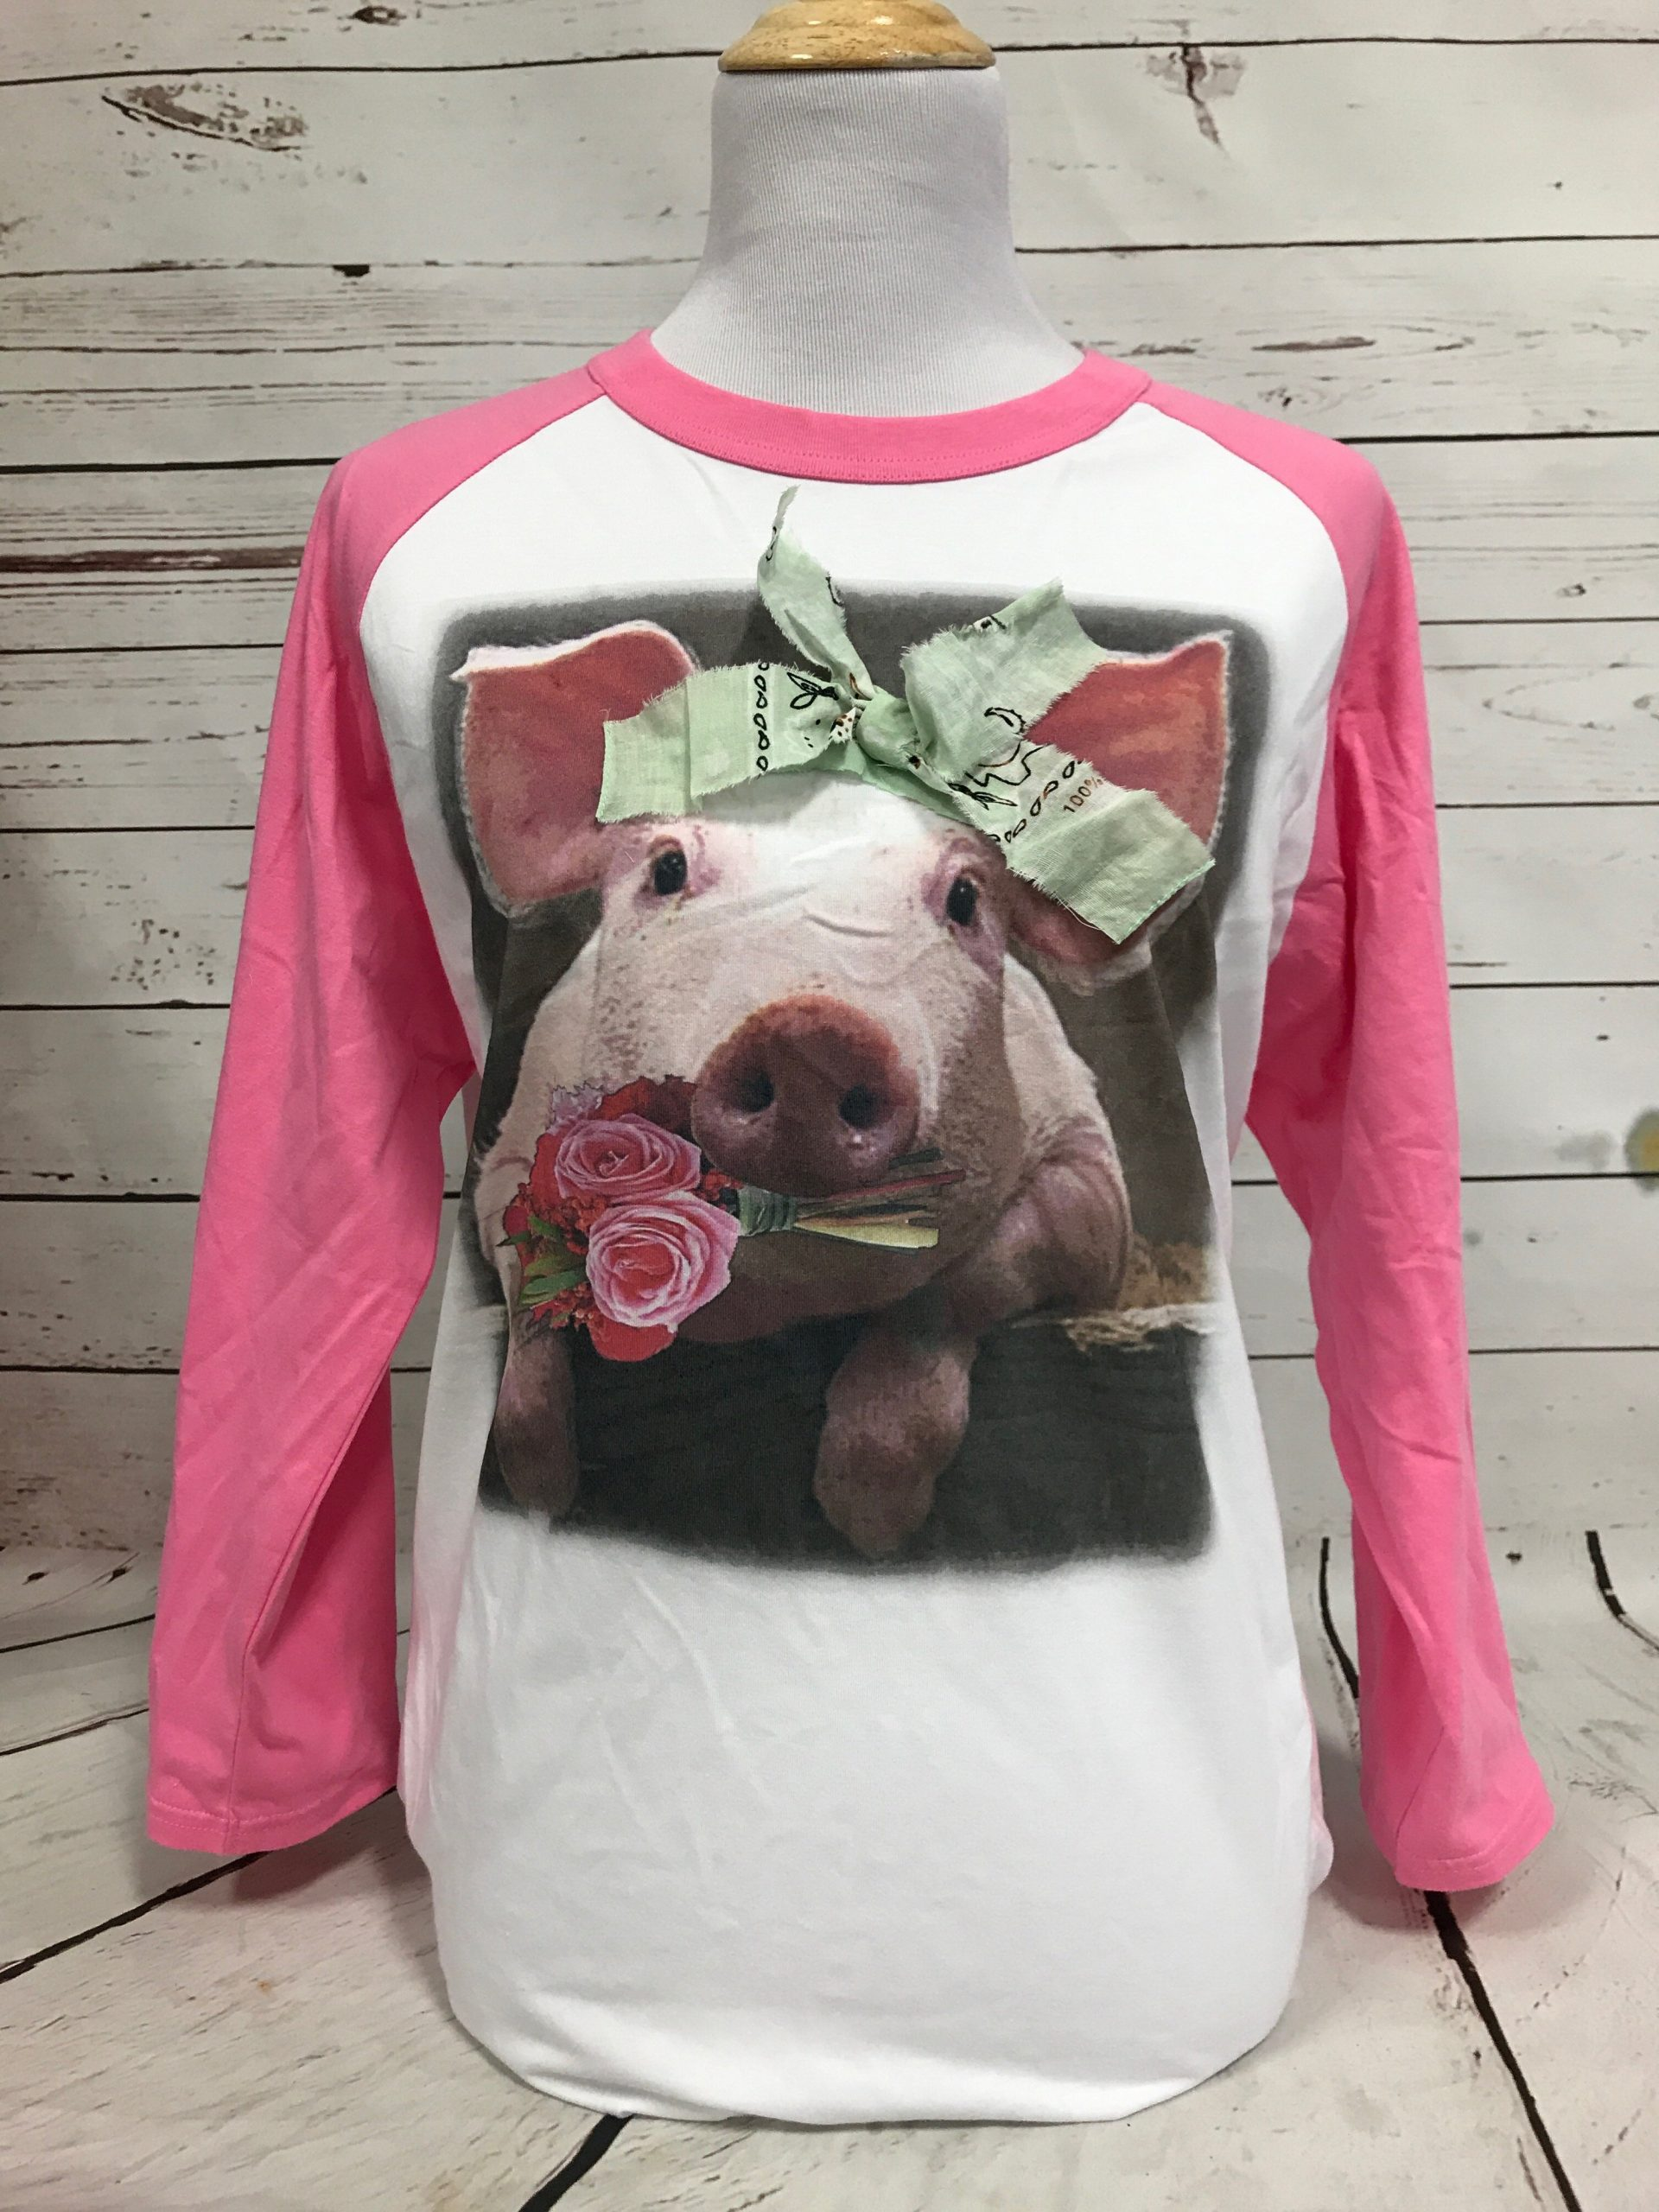 Pig with Mint Bandana on Pink and White Baseball Tee